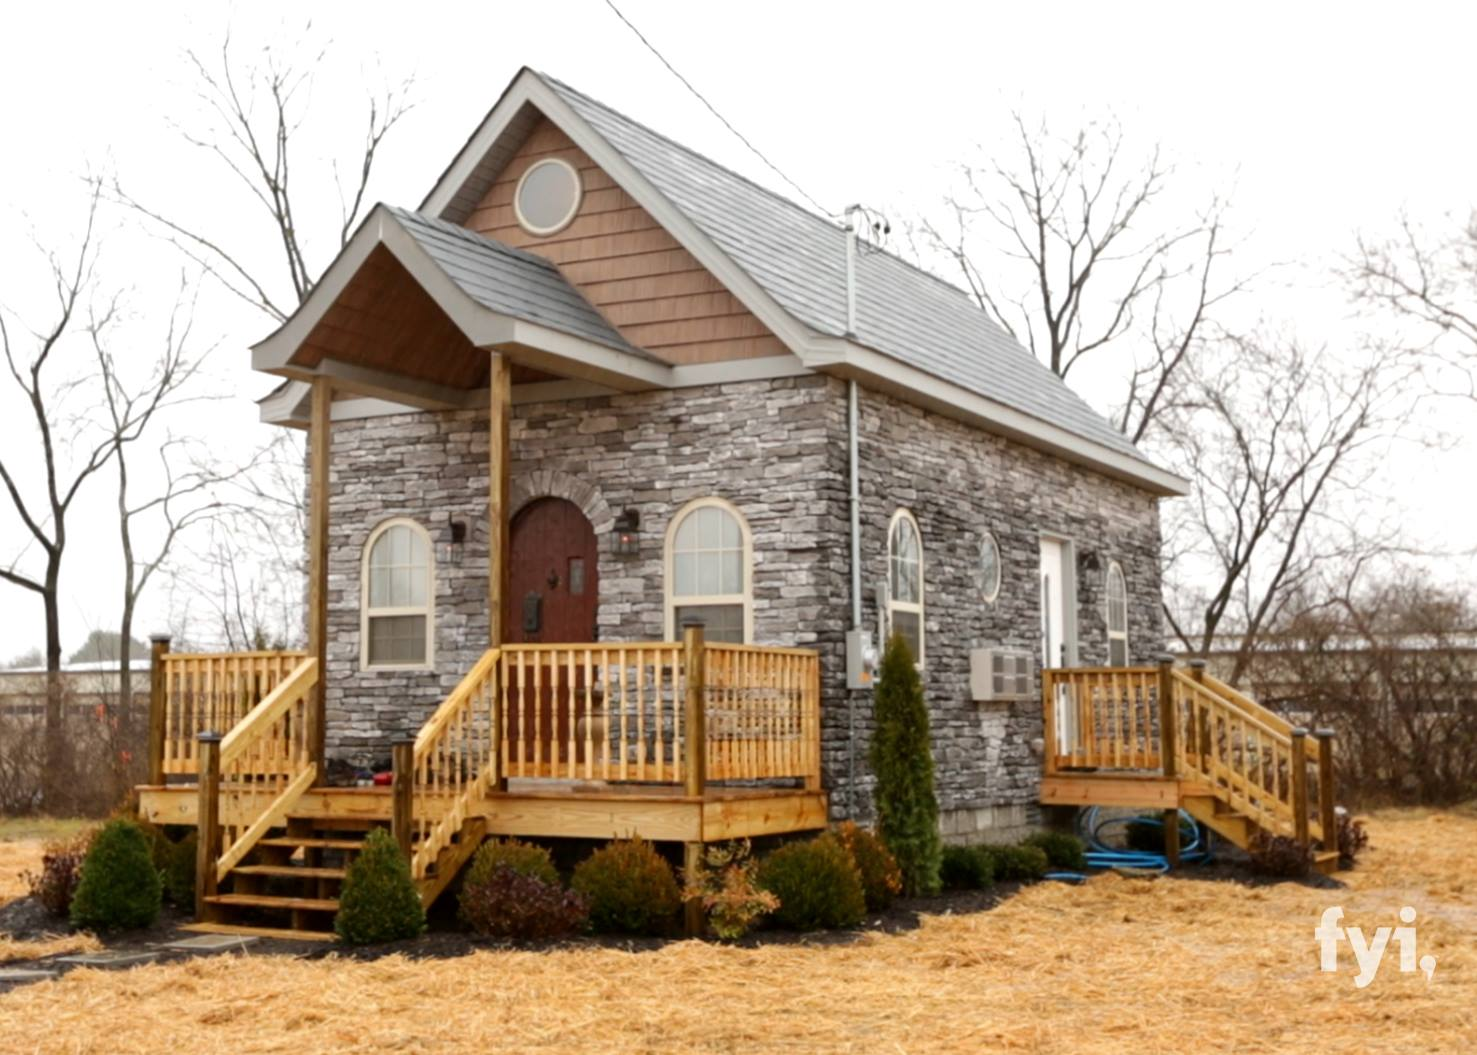 TINY HOUSE TOWN: Gothic Castle House (480 Sq Ft) on gothic cottage designs, gothic greenhouse designs, gothic garage designs, gothic building designs, gothic modern designs, gothic architecture tracery, gothic kitchen designs, gothic castle designs, gothic victorian designs, gothic house designs,